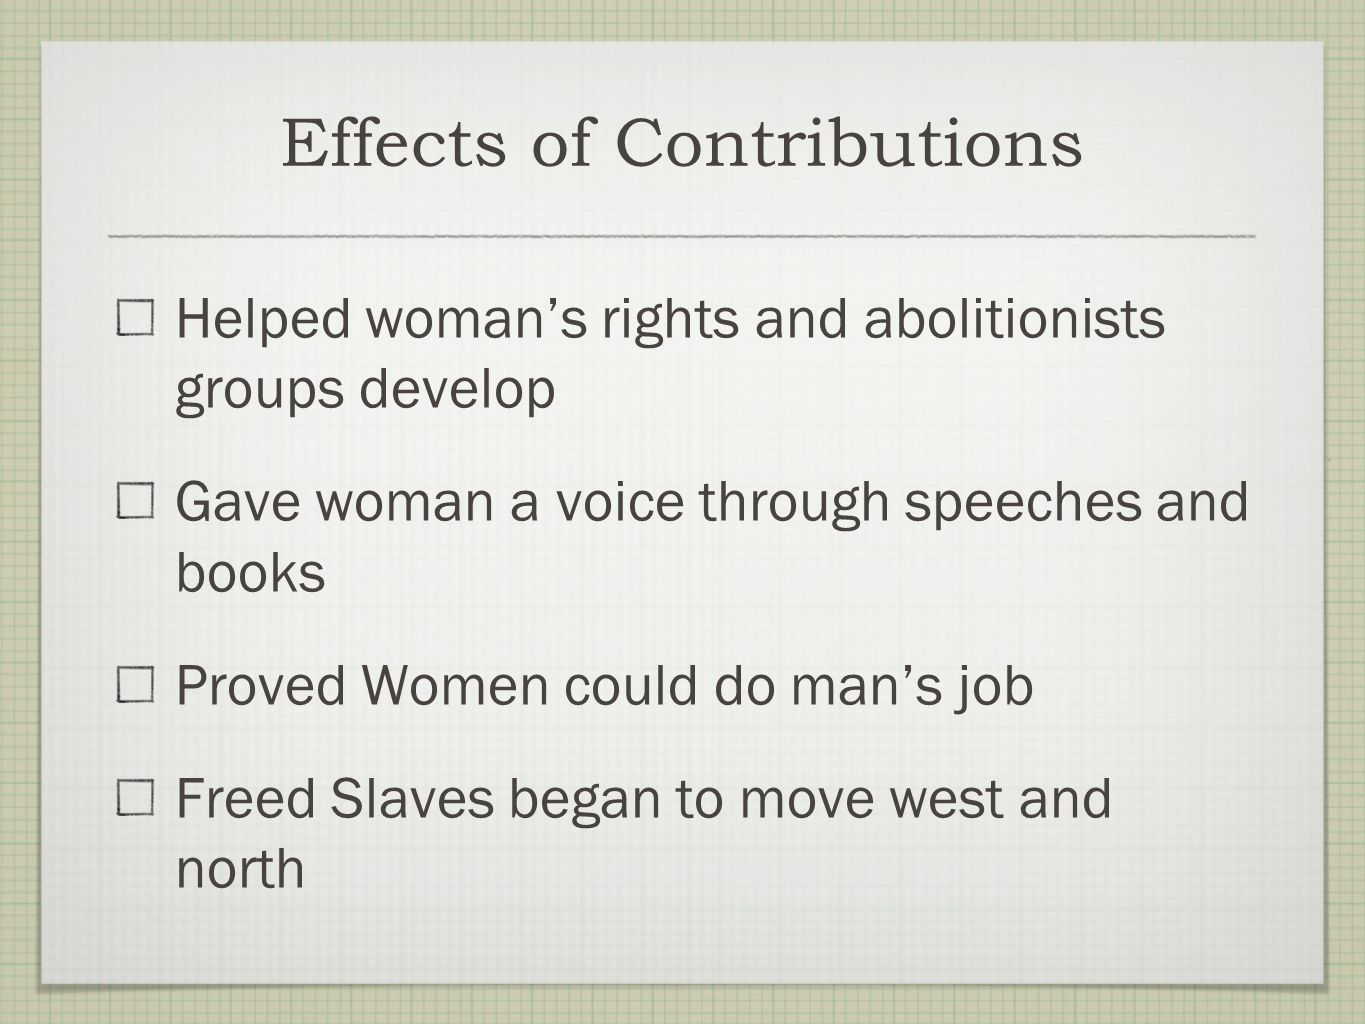 Effects of Contributions